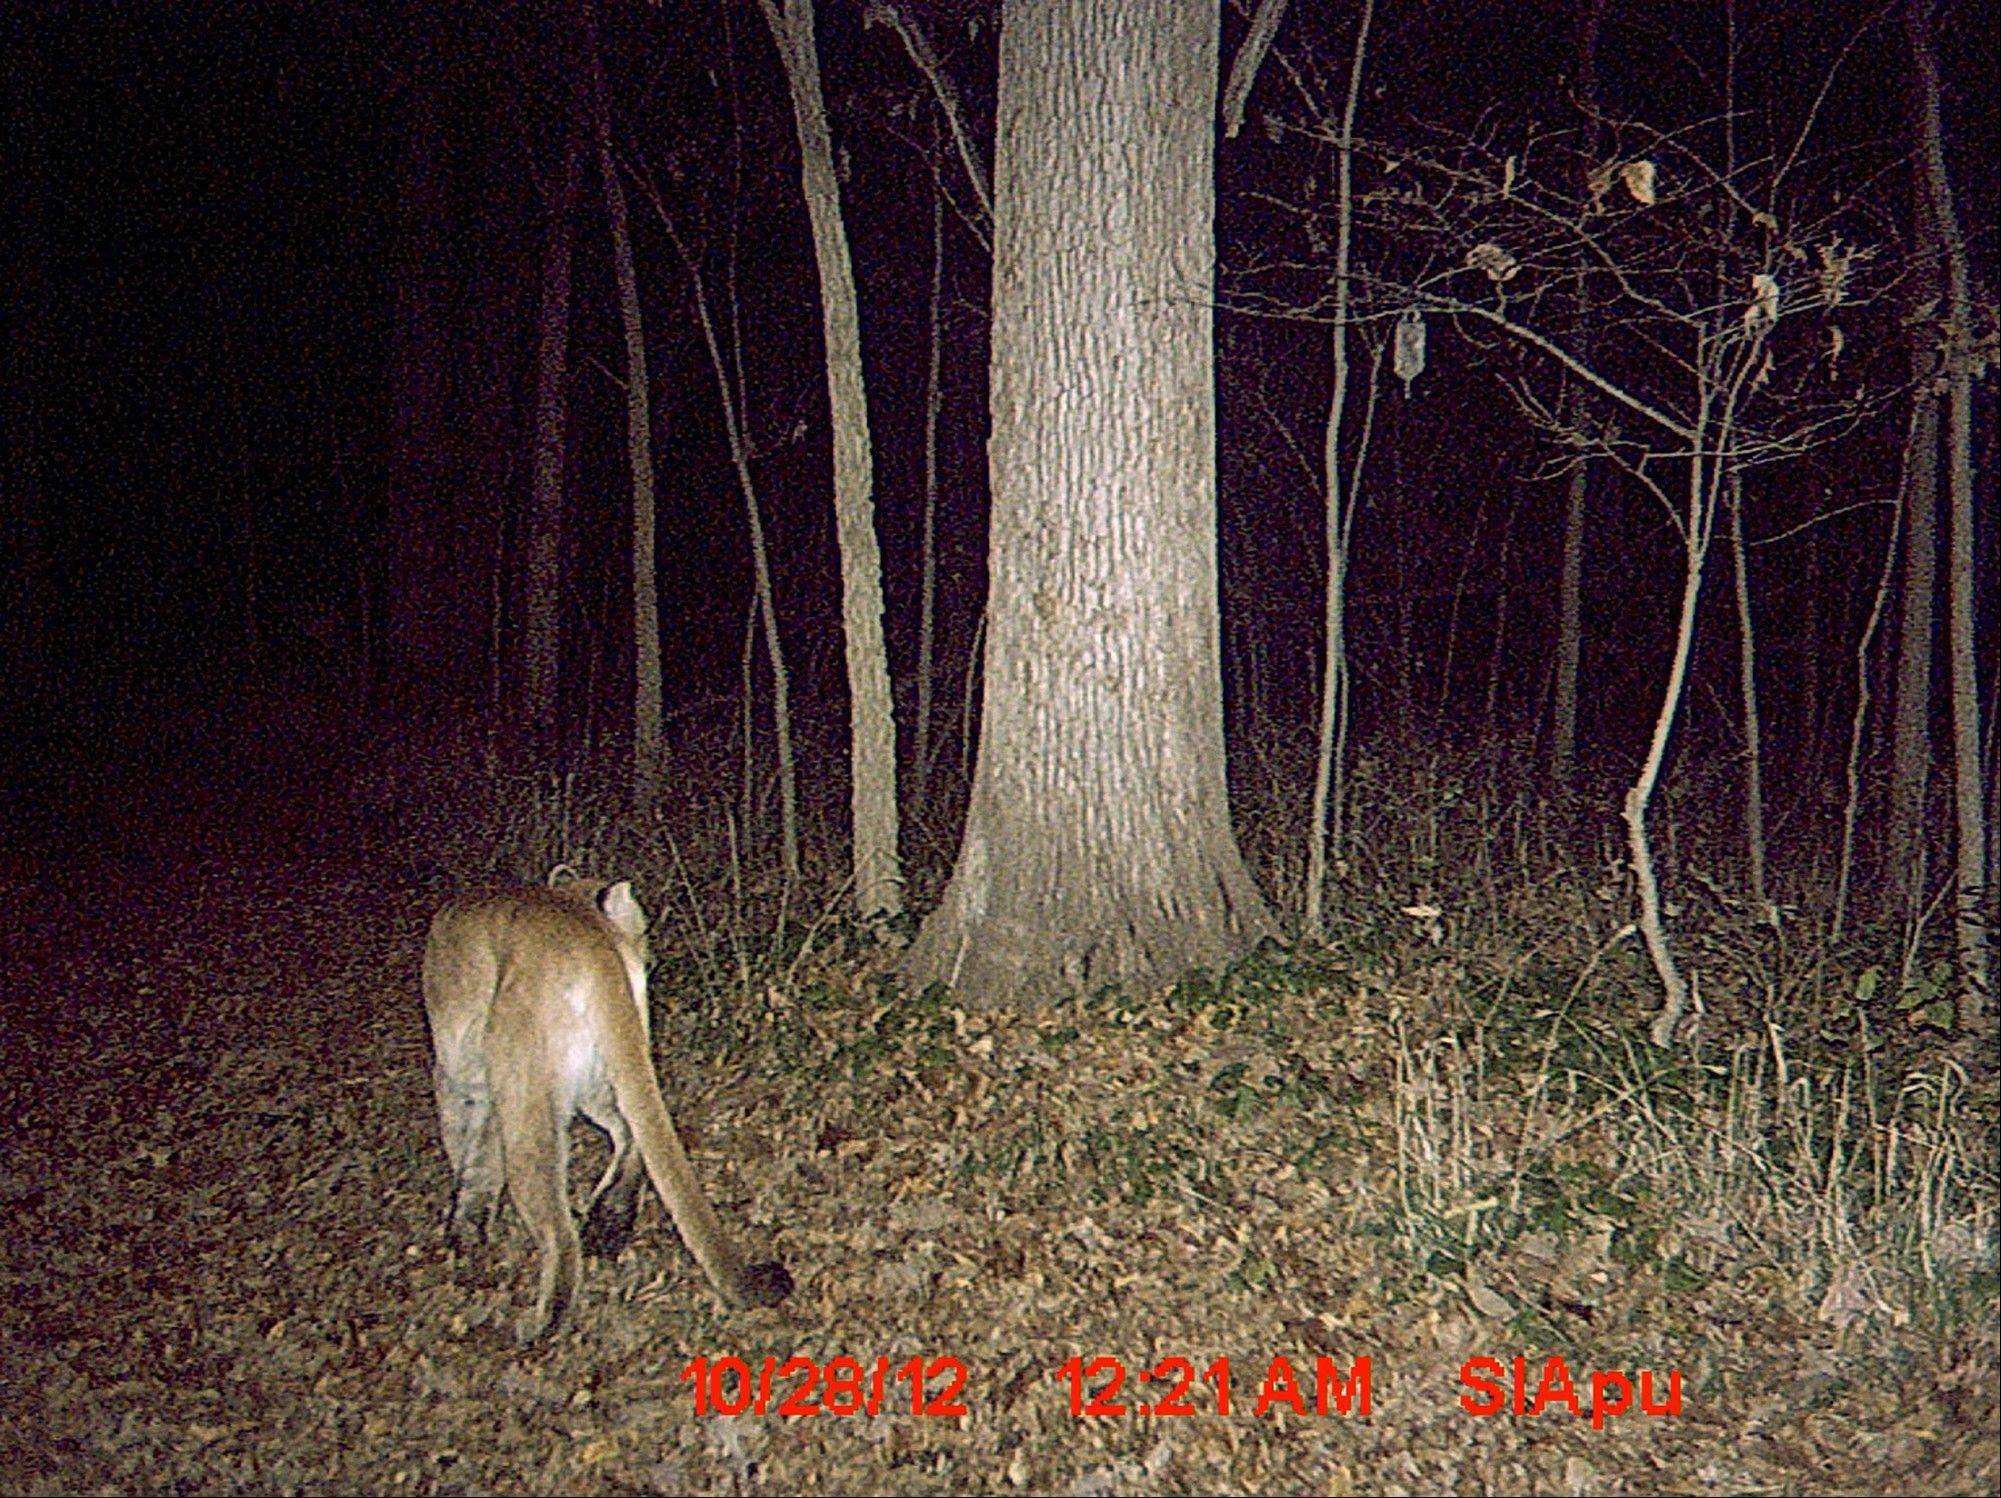 Another cougar sighting in Illinois